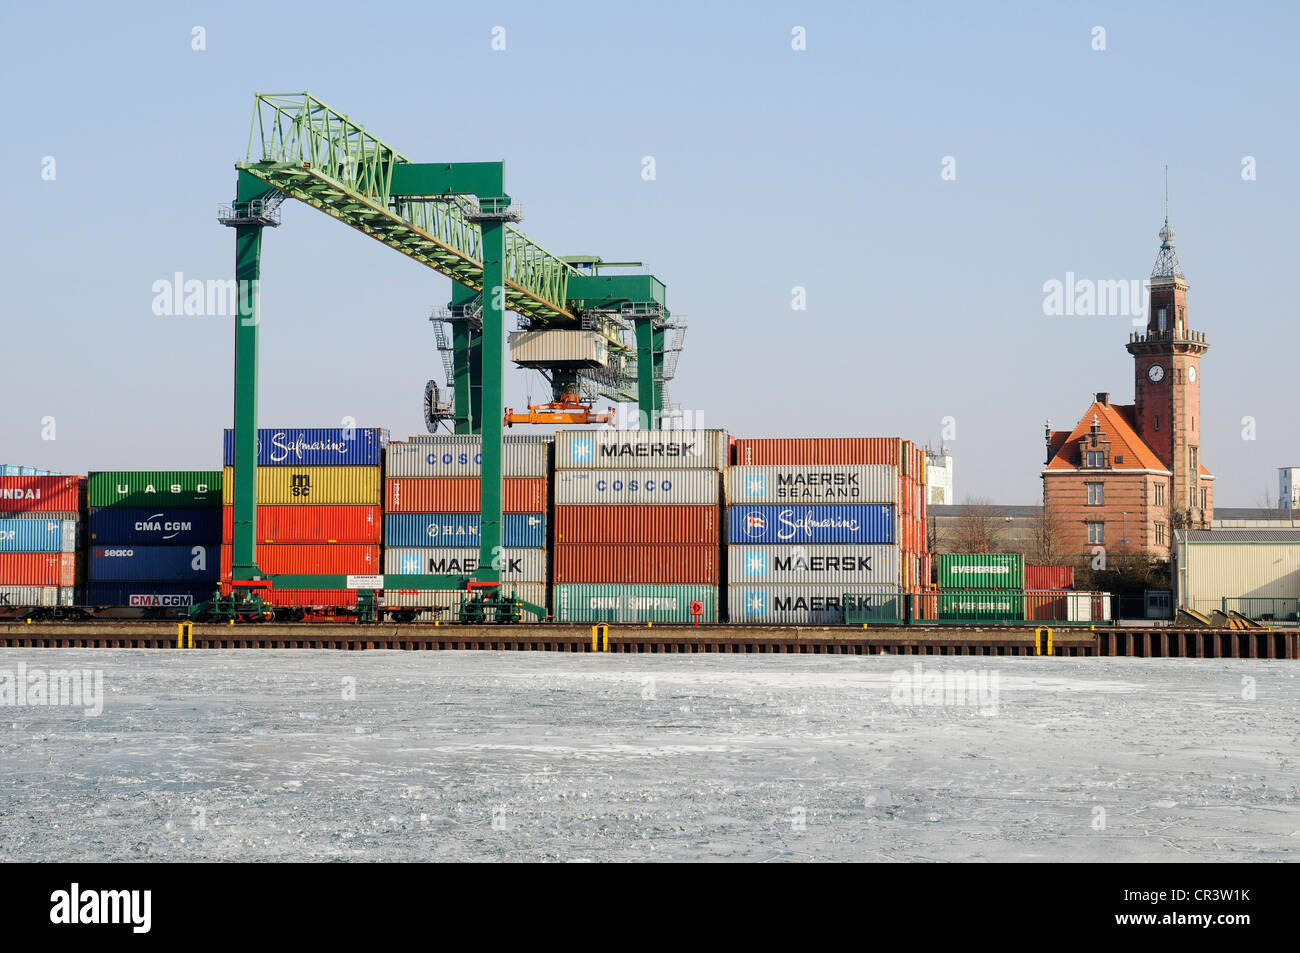 Frozen, icy harbour, container terminal, port authorities, inland port, Dortmund, Ruhr Area, North Rhine-Westphalia - Stock Image